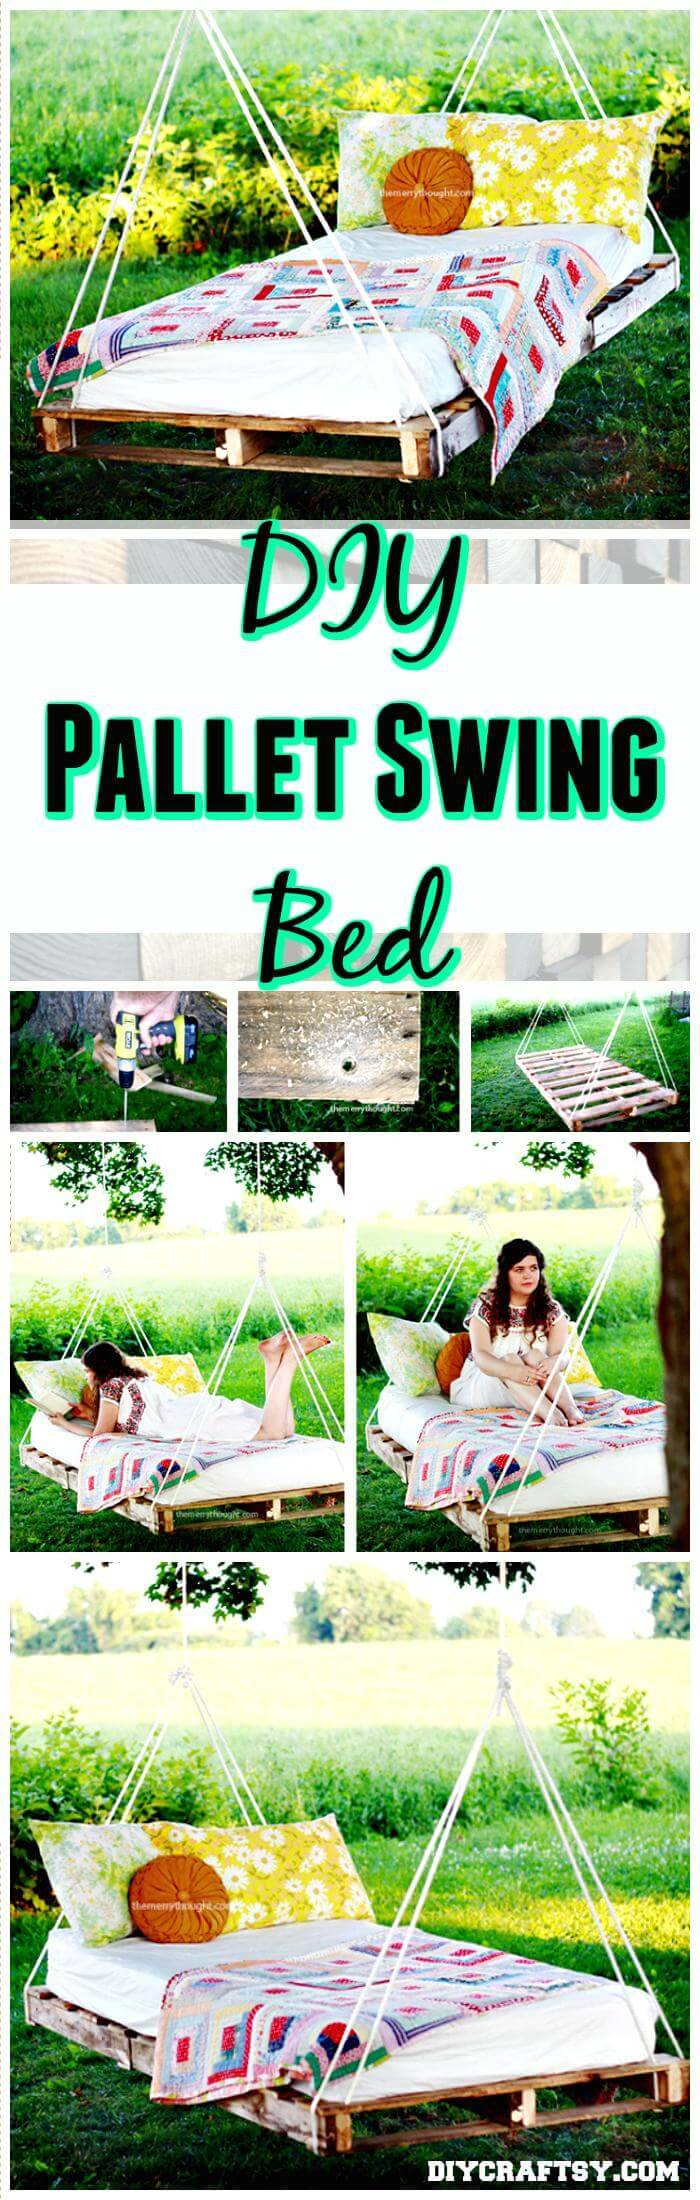 DIY Pallet Swing Bed Tutorial